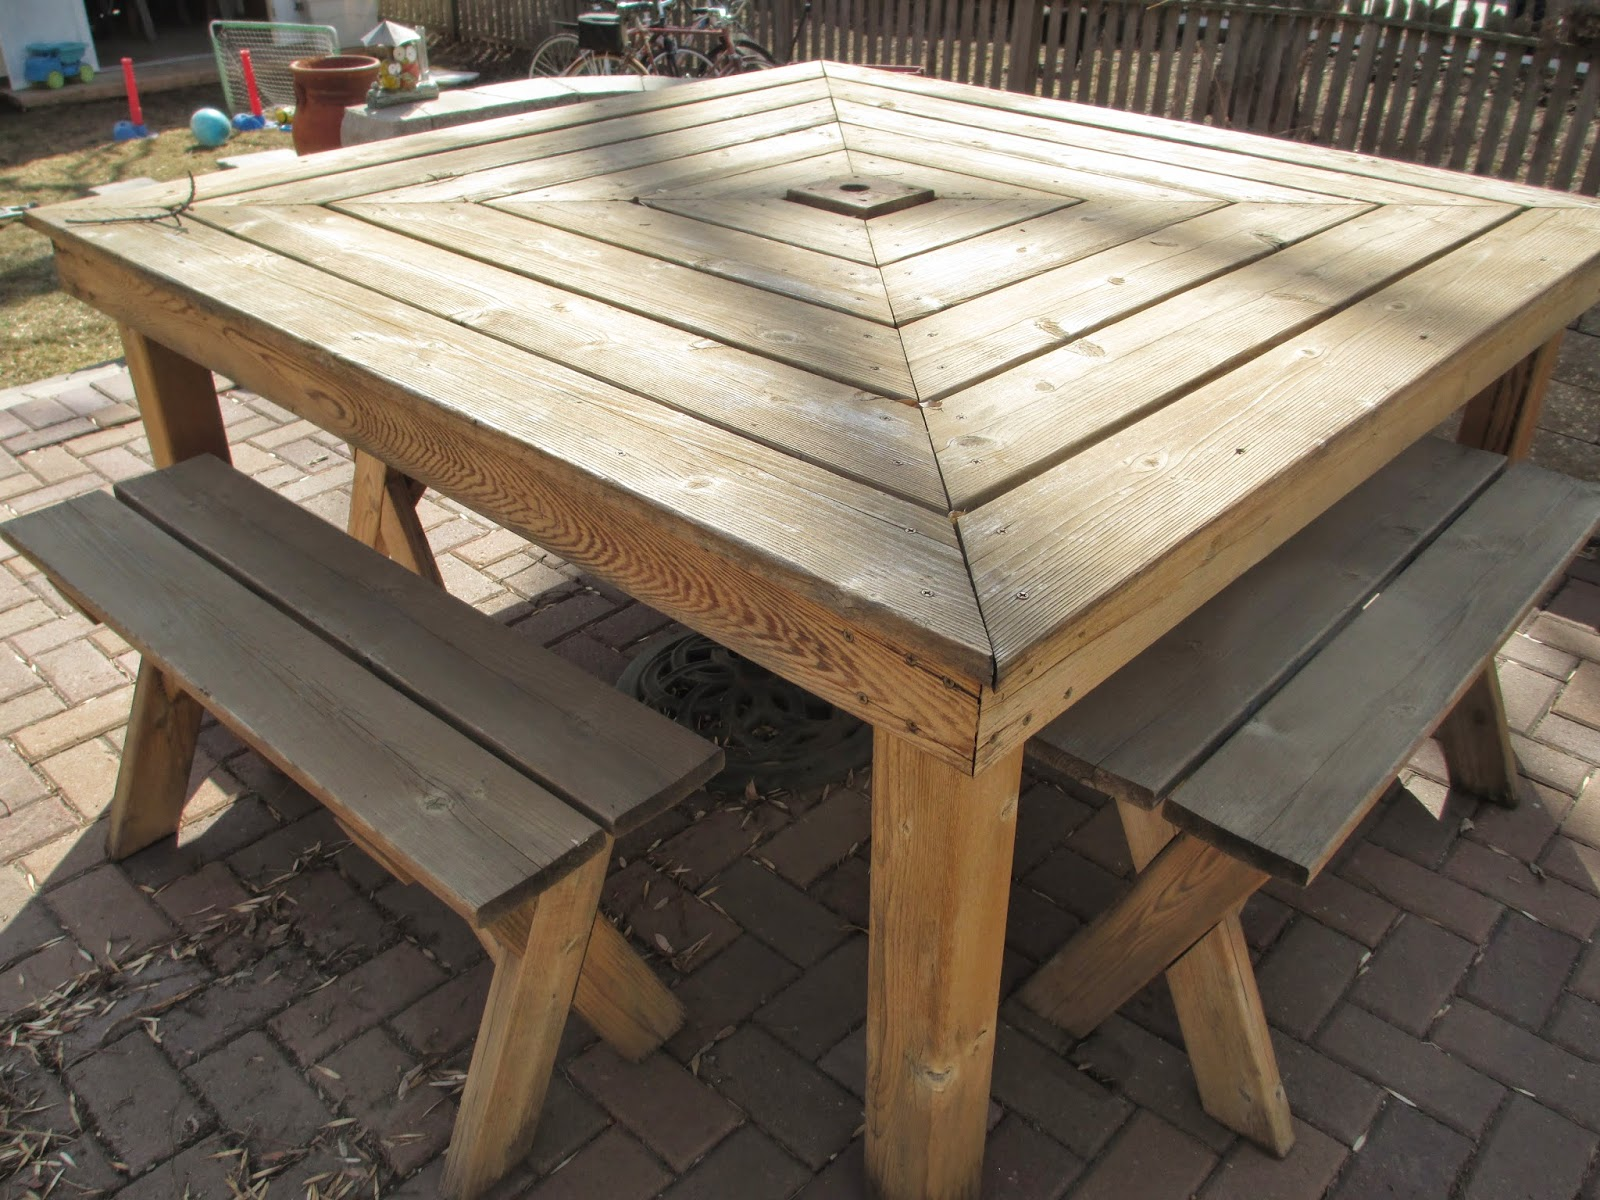 KRUSE'S WORKSHOP: How (Not) To Refresh Your Outdoor Patio